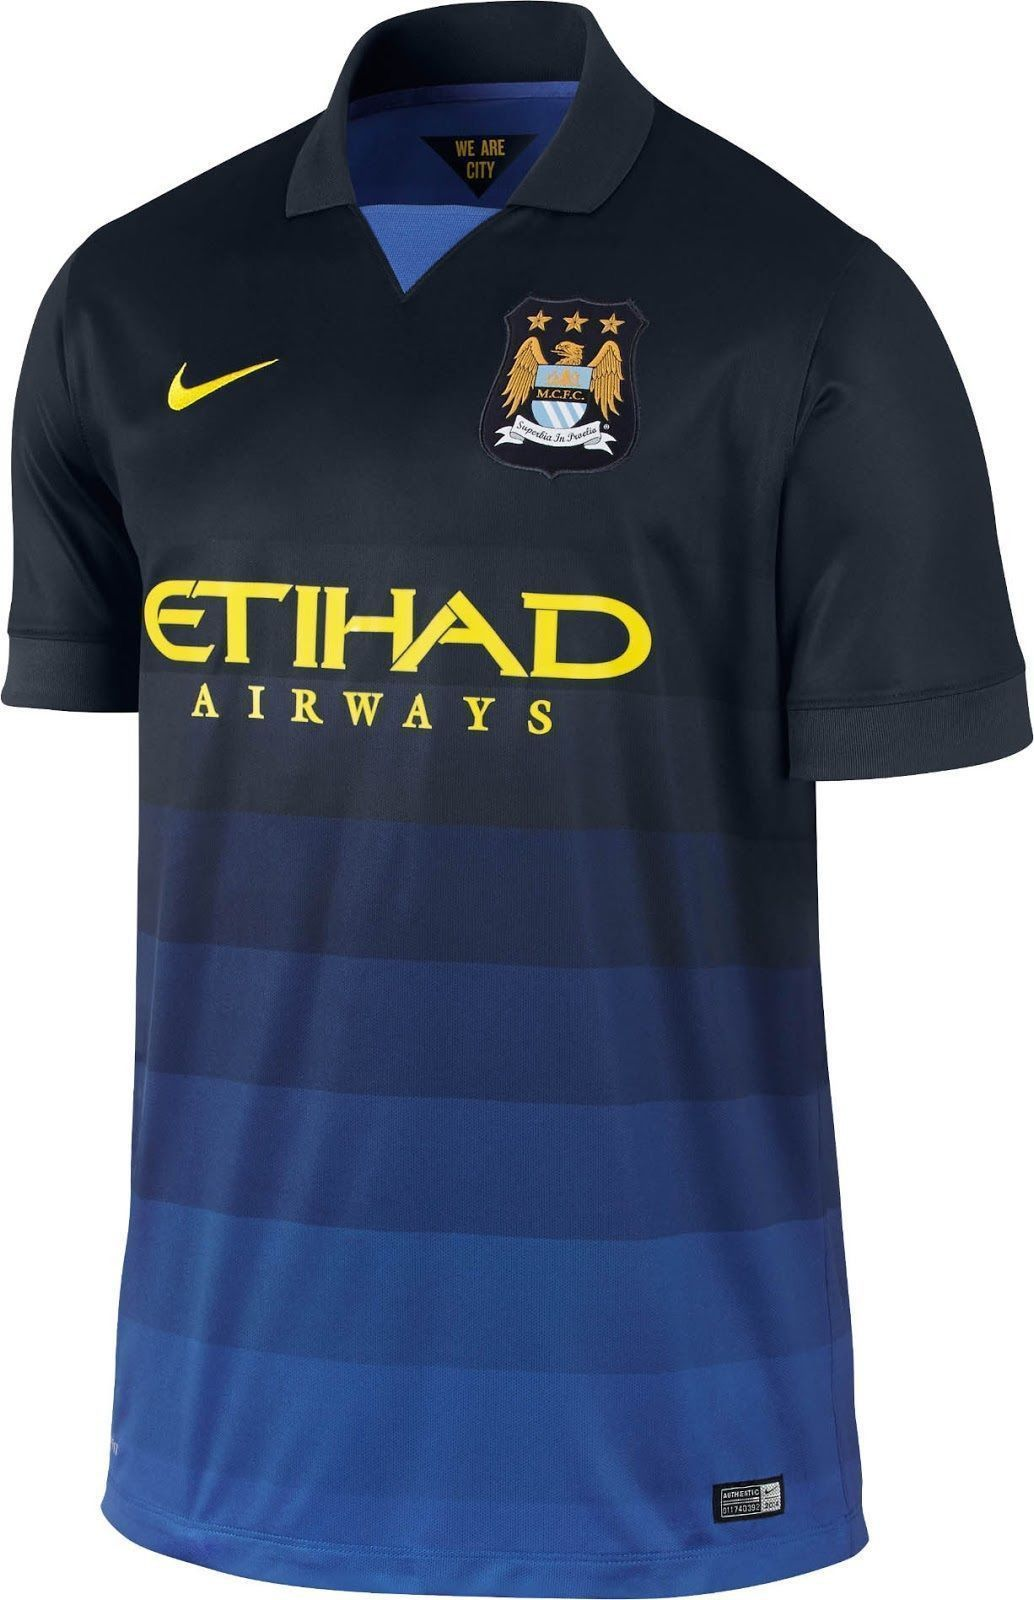 32a9ef73c5e9f NIKE MANCHESTER CITY AWAY JERSEY 2014 15 TEAM LOYALTY. TOTAL COMFORT. The  2014 15 Manchester City FC Stadium Men s Soccer Jersey is made with  sweat-wicking ...